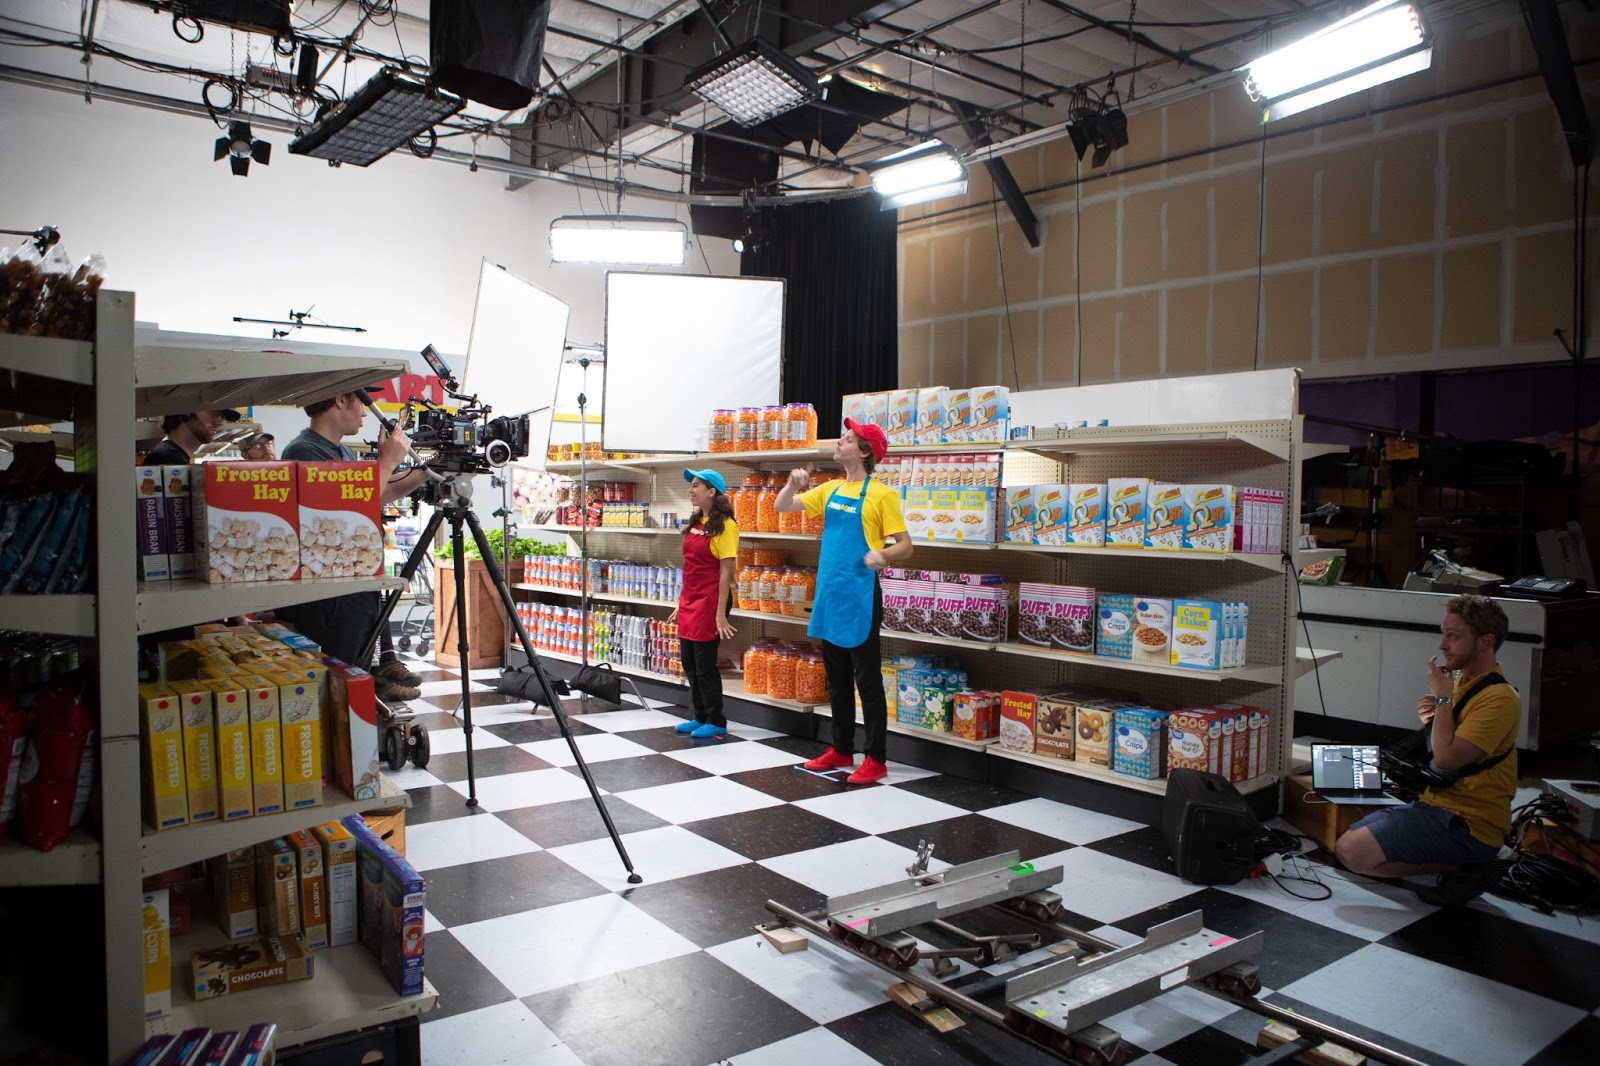 Nate & Hila rapping on the set of Omega Mart's 'Employee Training' videos.